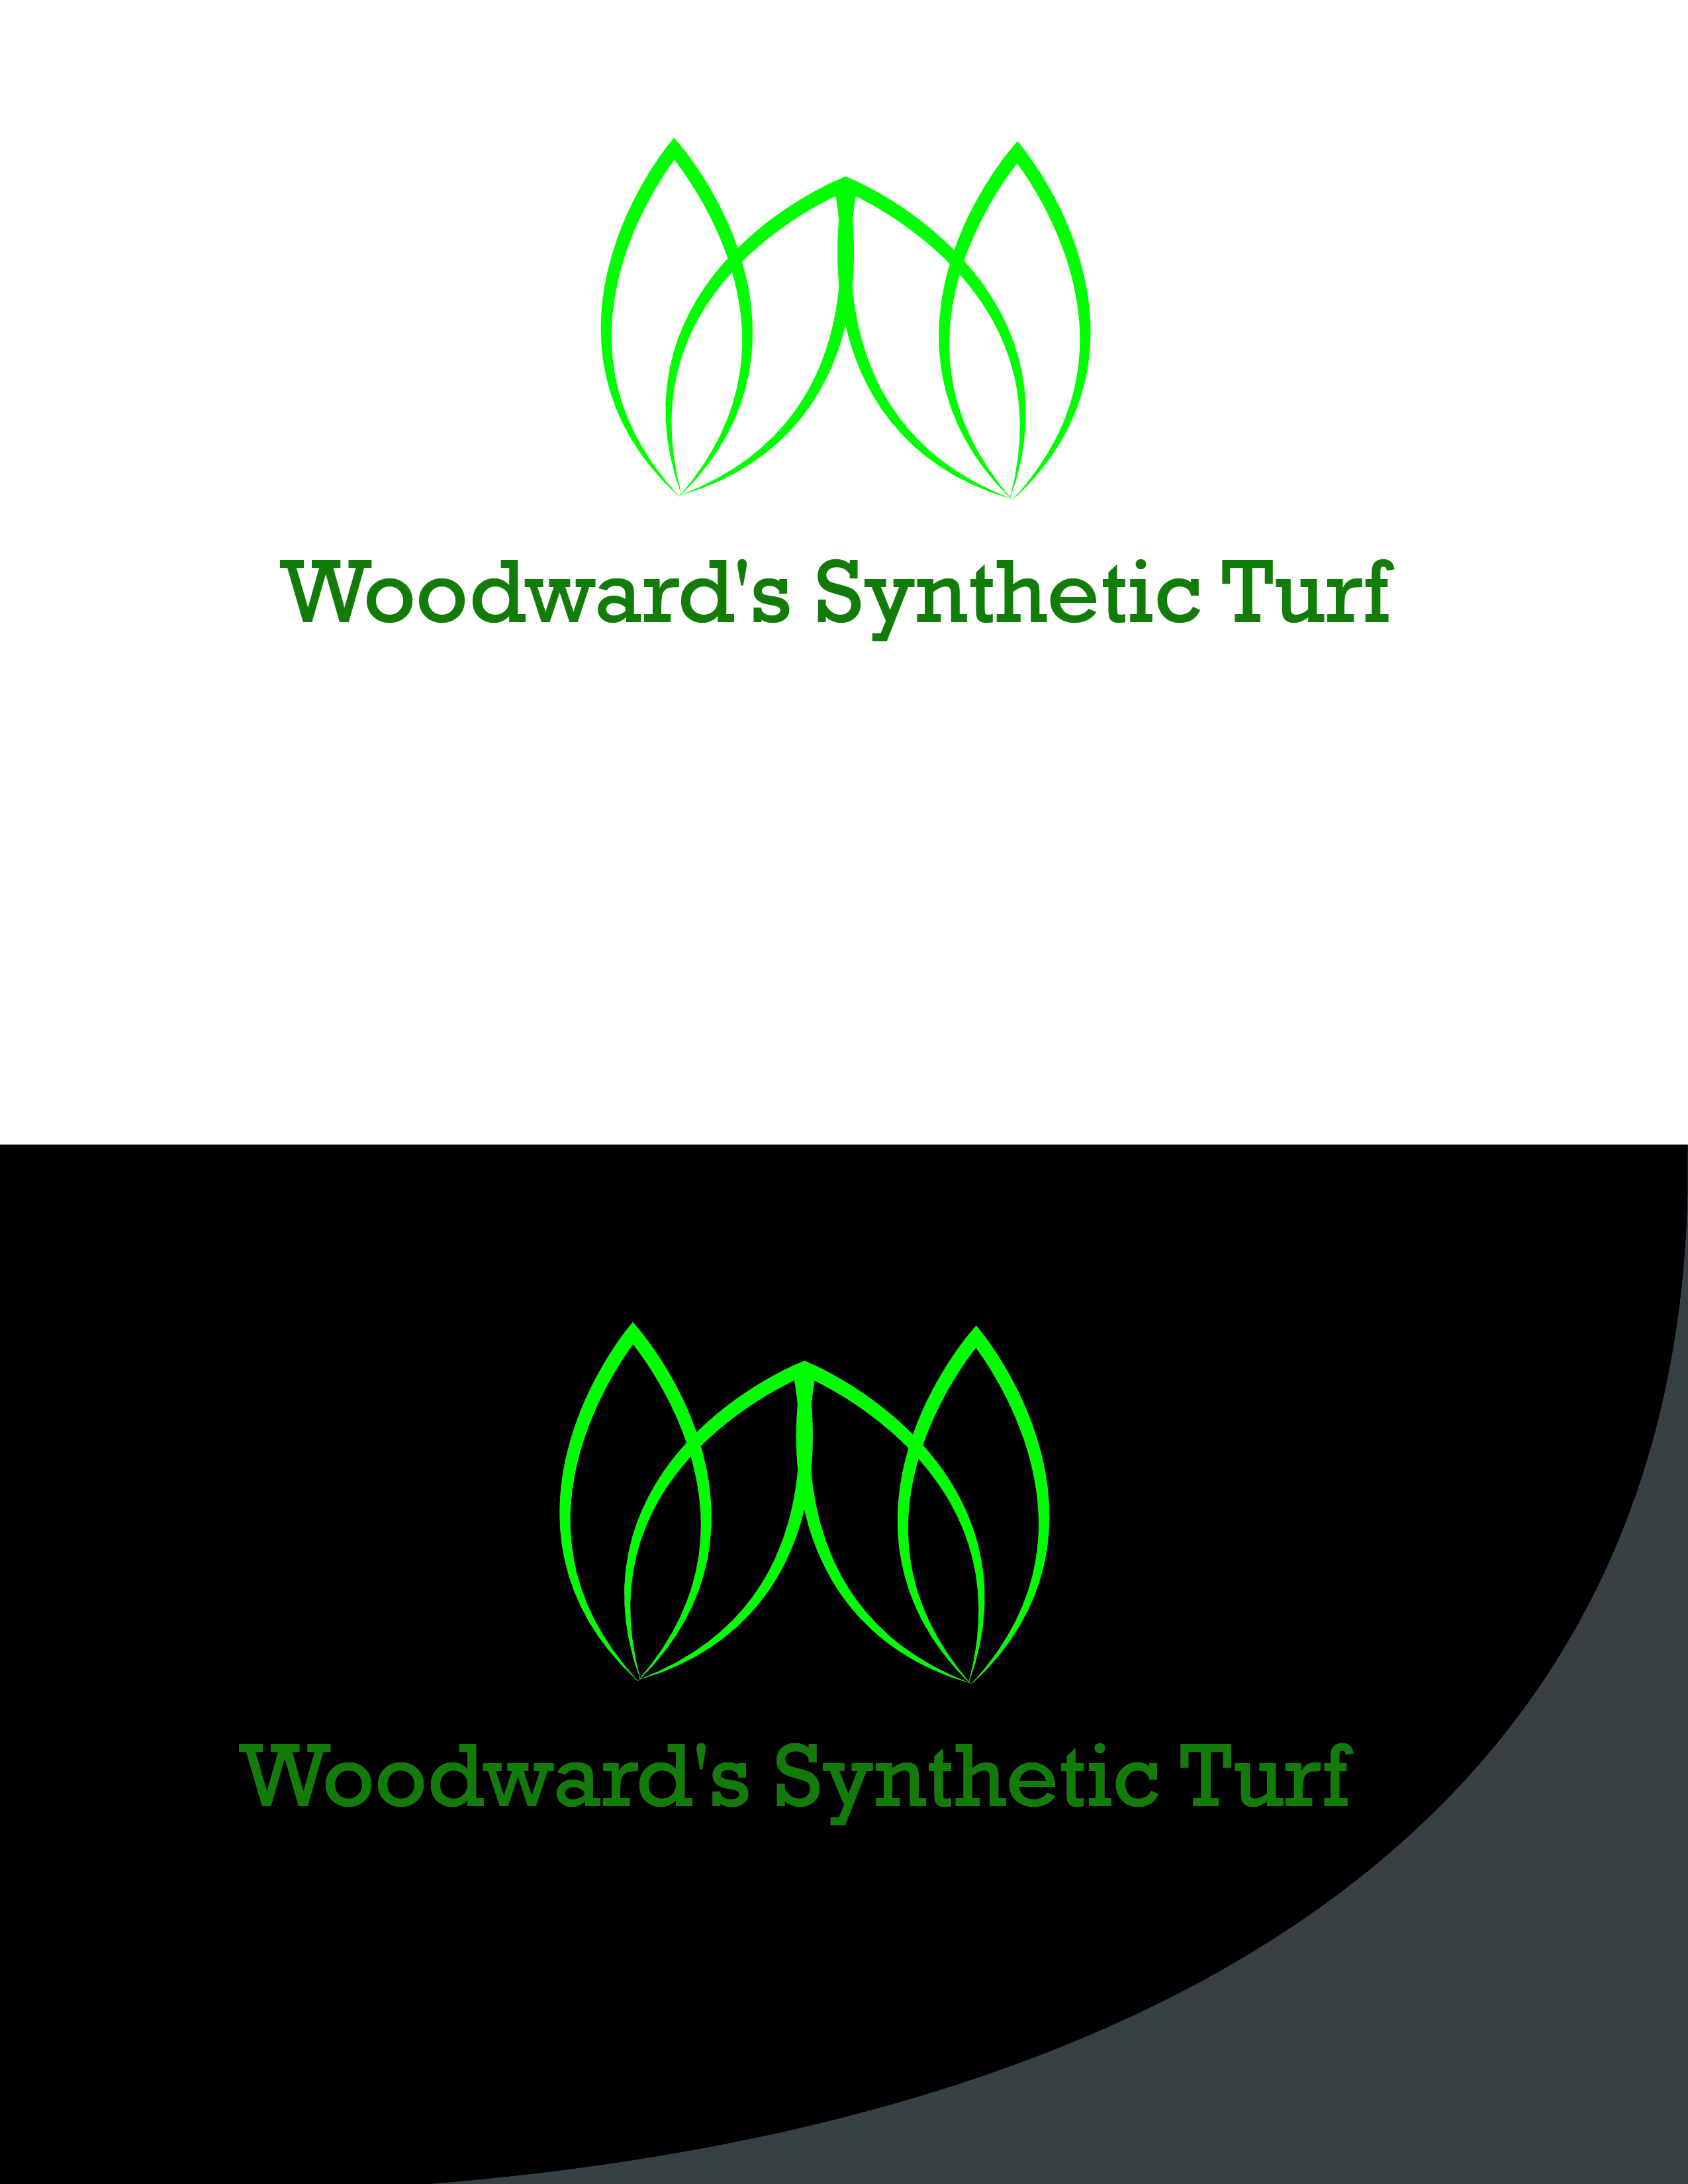 Logo Design by AQIB SHAIKH - Entry No. 14 in the Logo Design Contest Artistic Logo Design for Woodward's Synthetic Turf.